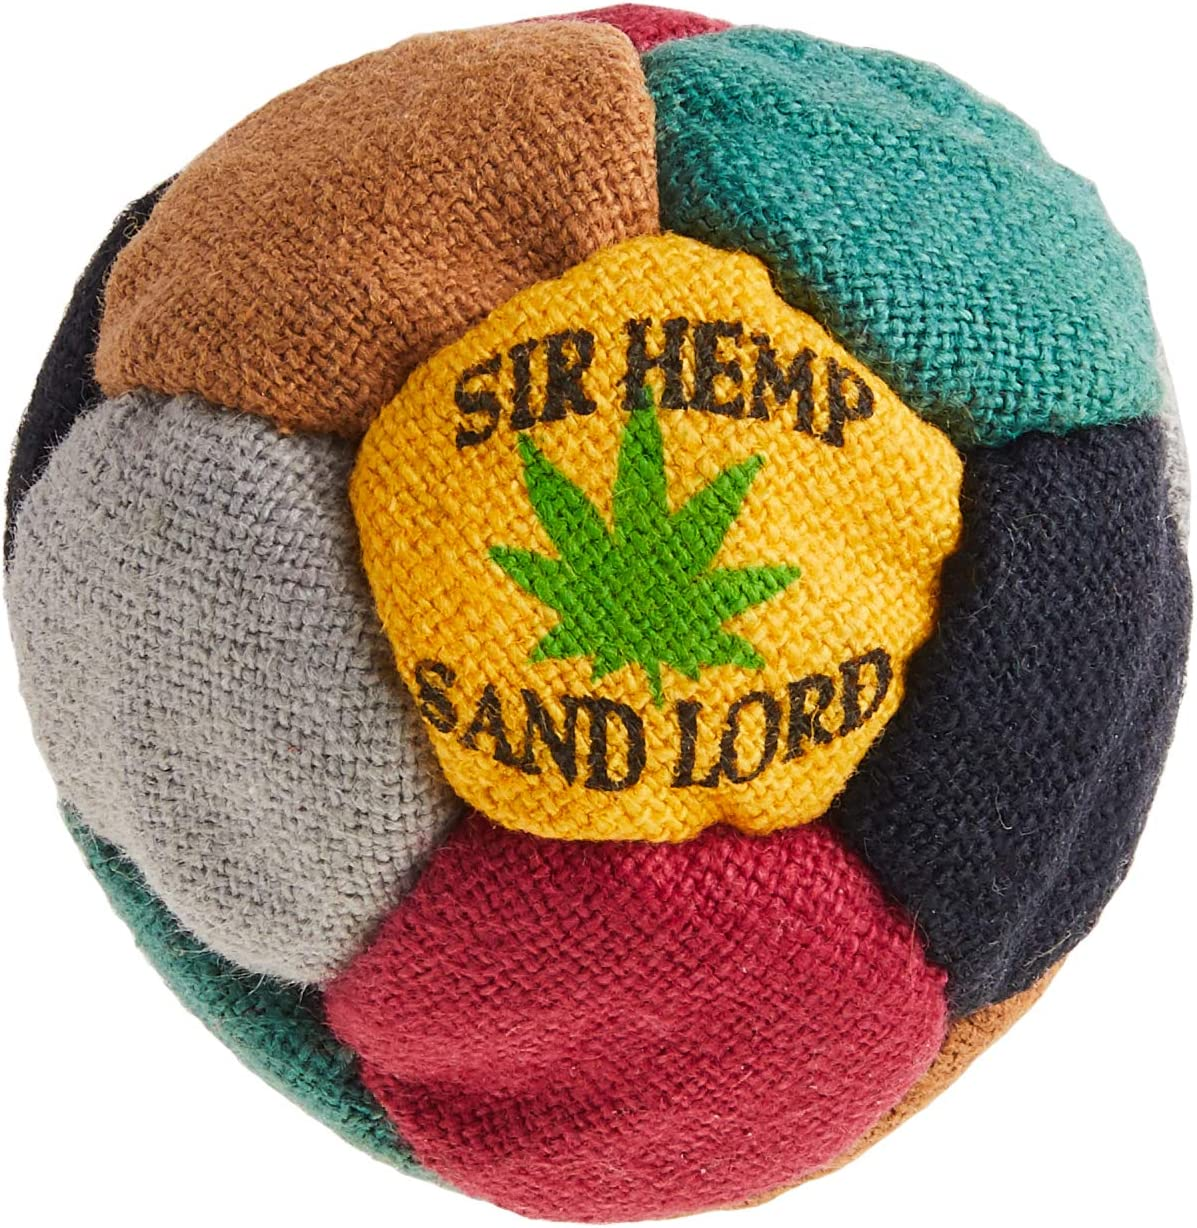 World Footbag Sir Hemp Hacky Max 80% OFF Outlet sale feature Red Green Sack Grey Black